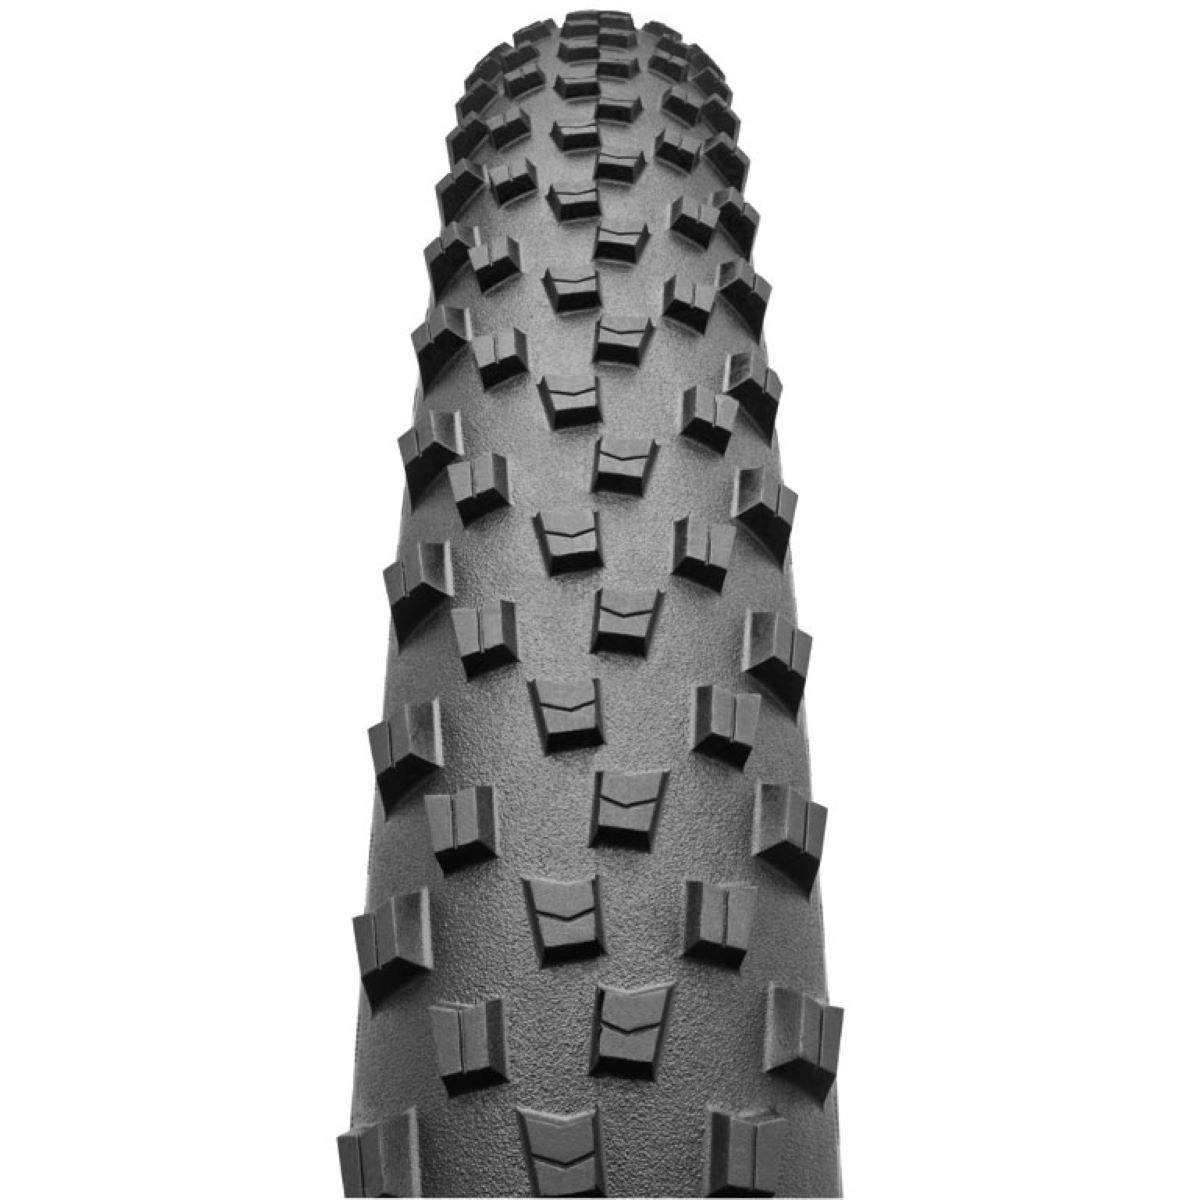 Pneu VTT Continental X King Protection 29 pouces (souple) - 29 x 2.2